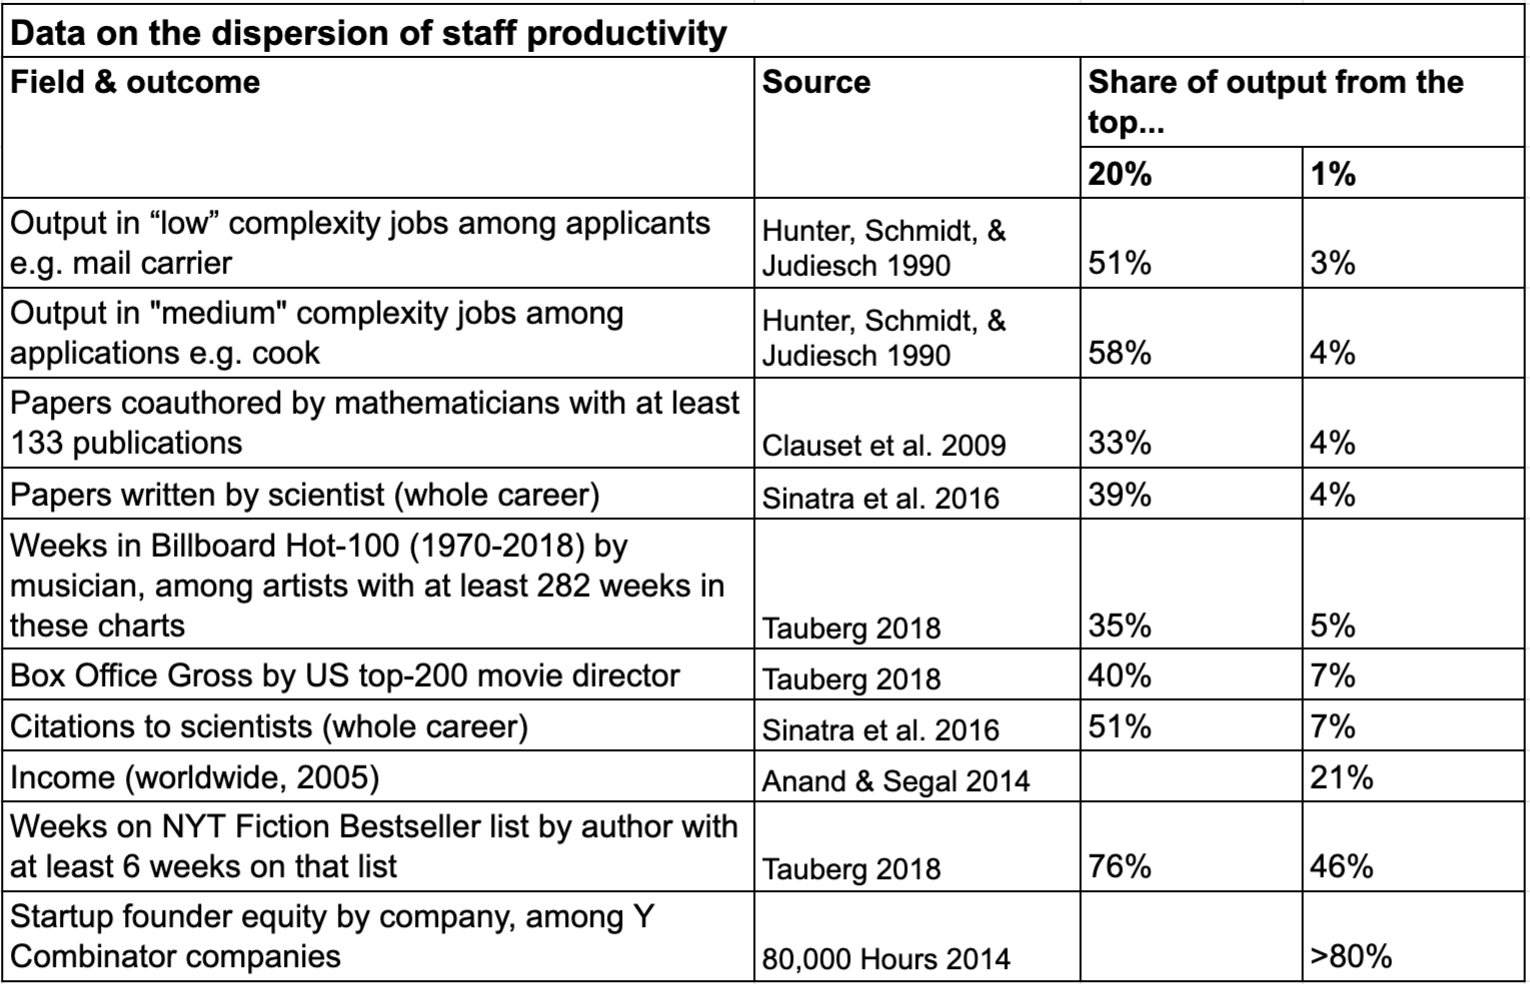 Data on the dispersion of staff productivity